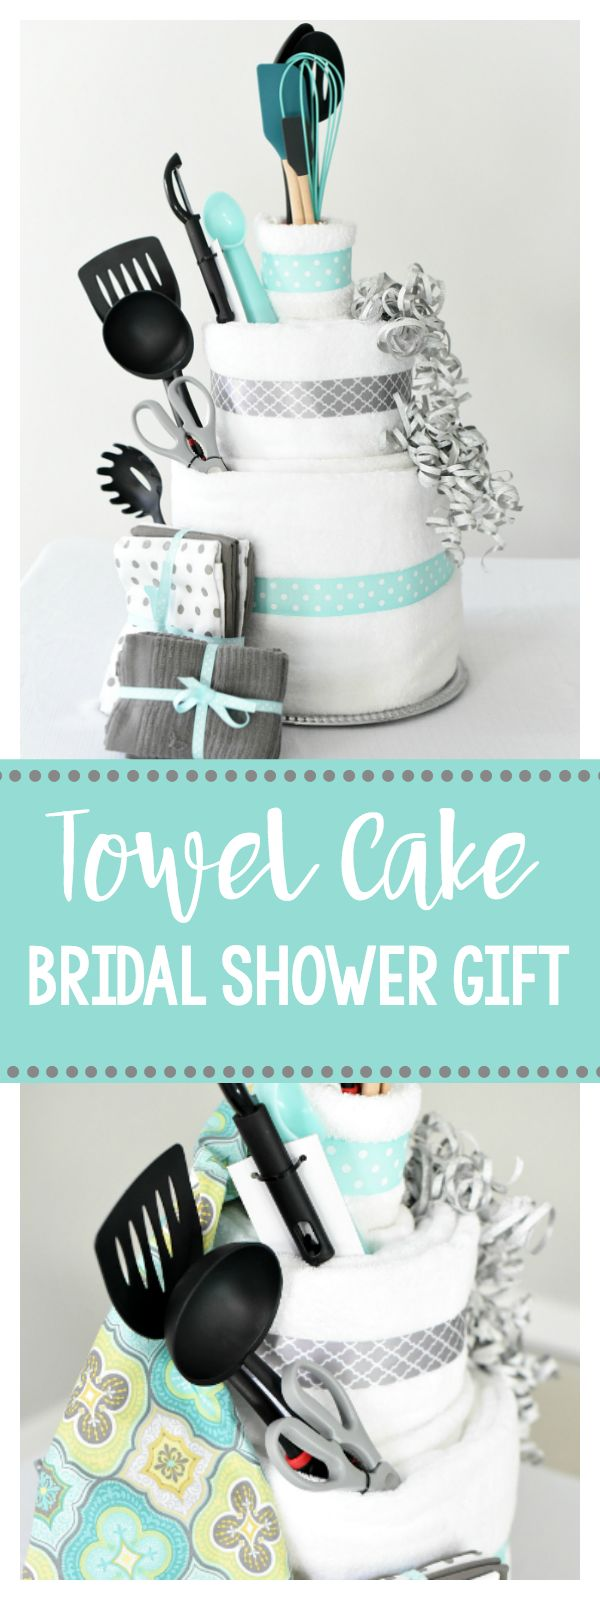 Towel Cake: A Fun DIY Bridal Shower Gift that She Will LOVE!